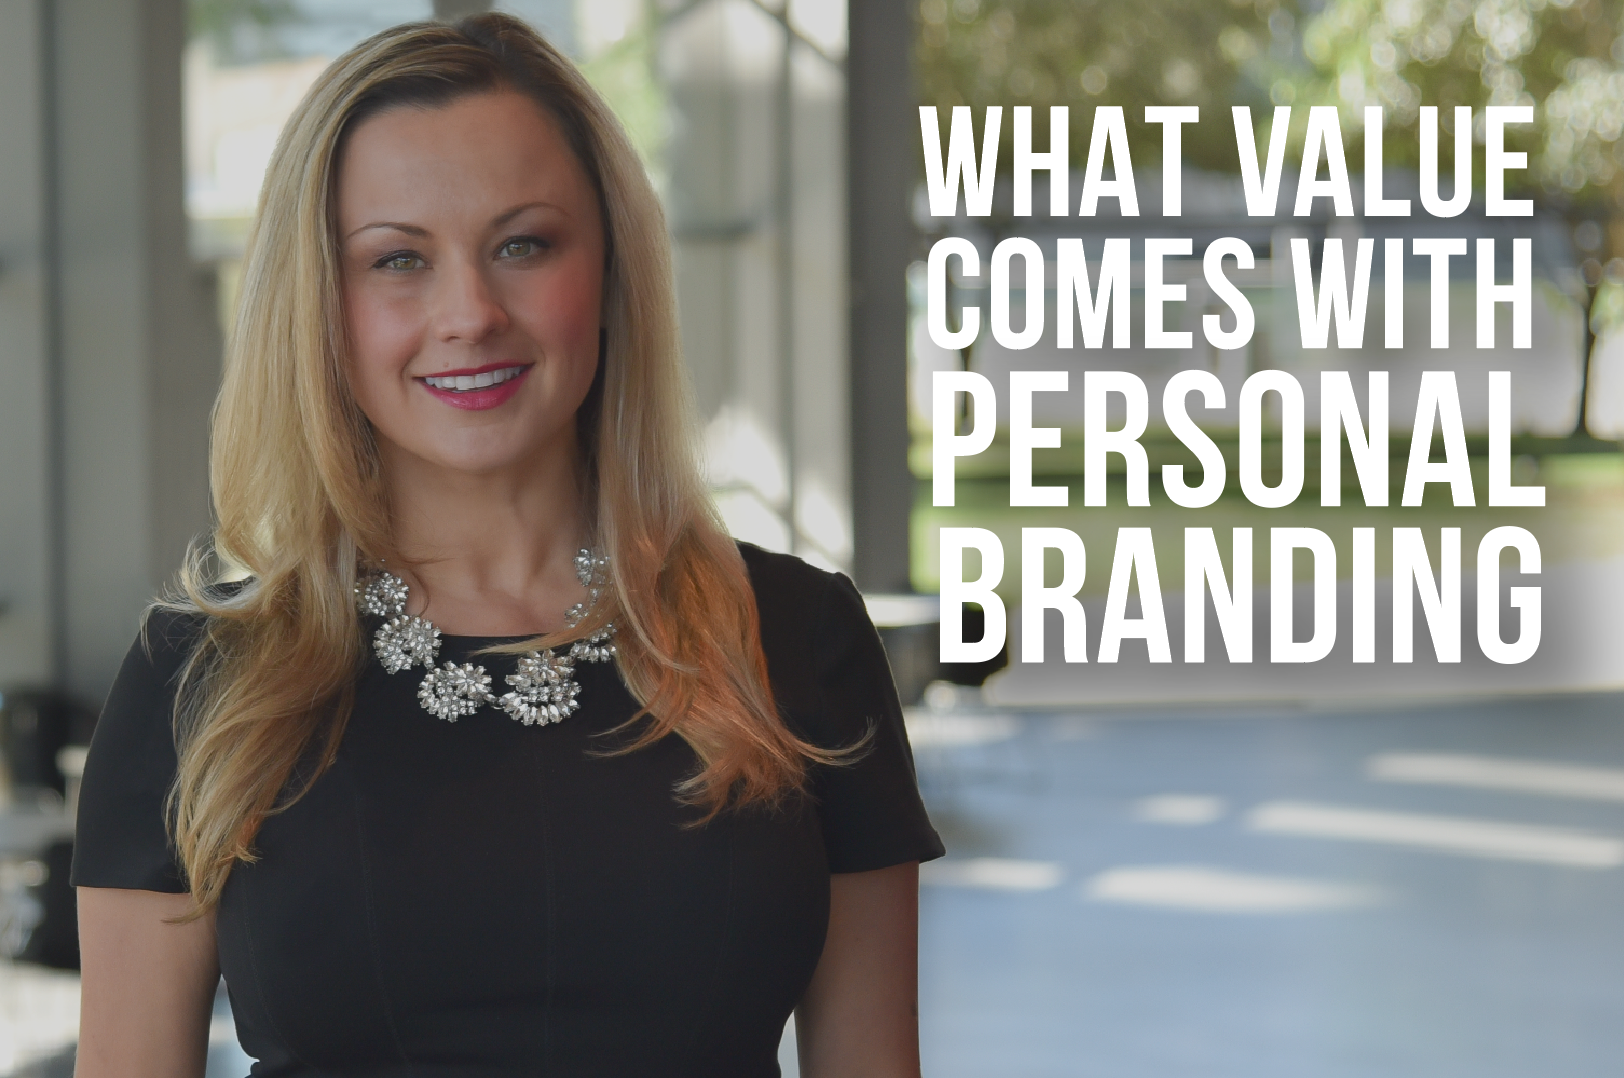 WHAT VALUE COMES WITH PERSONAL BRANDING